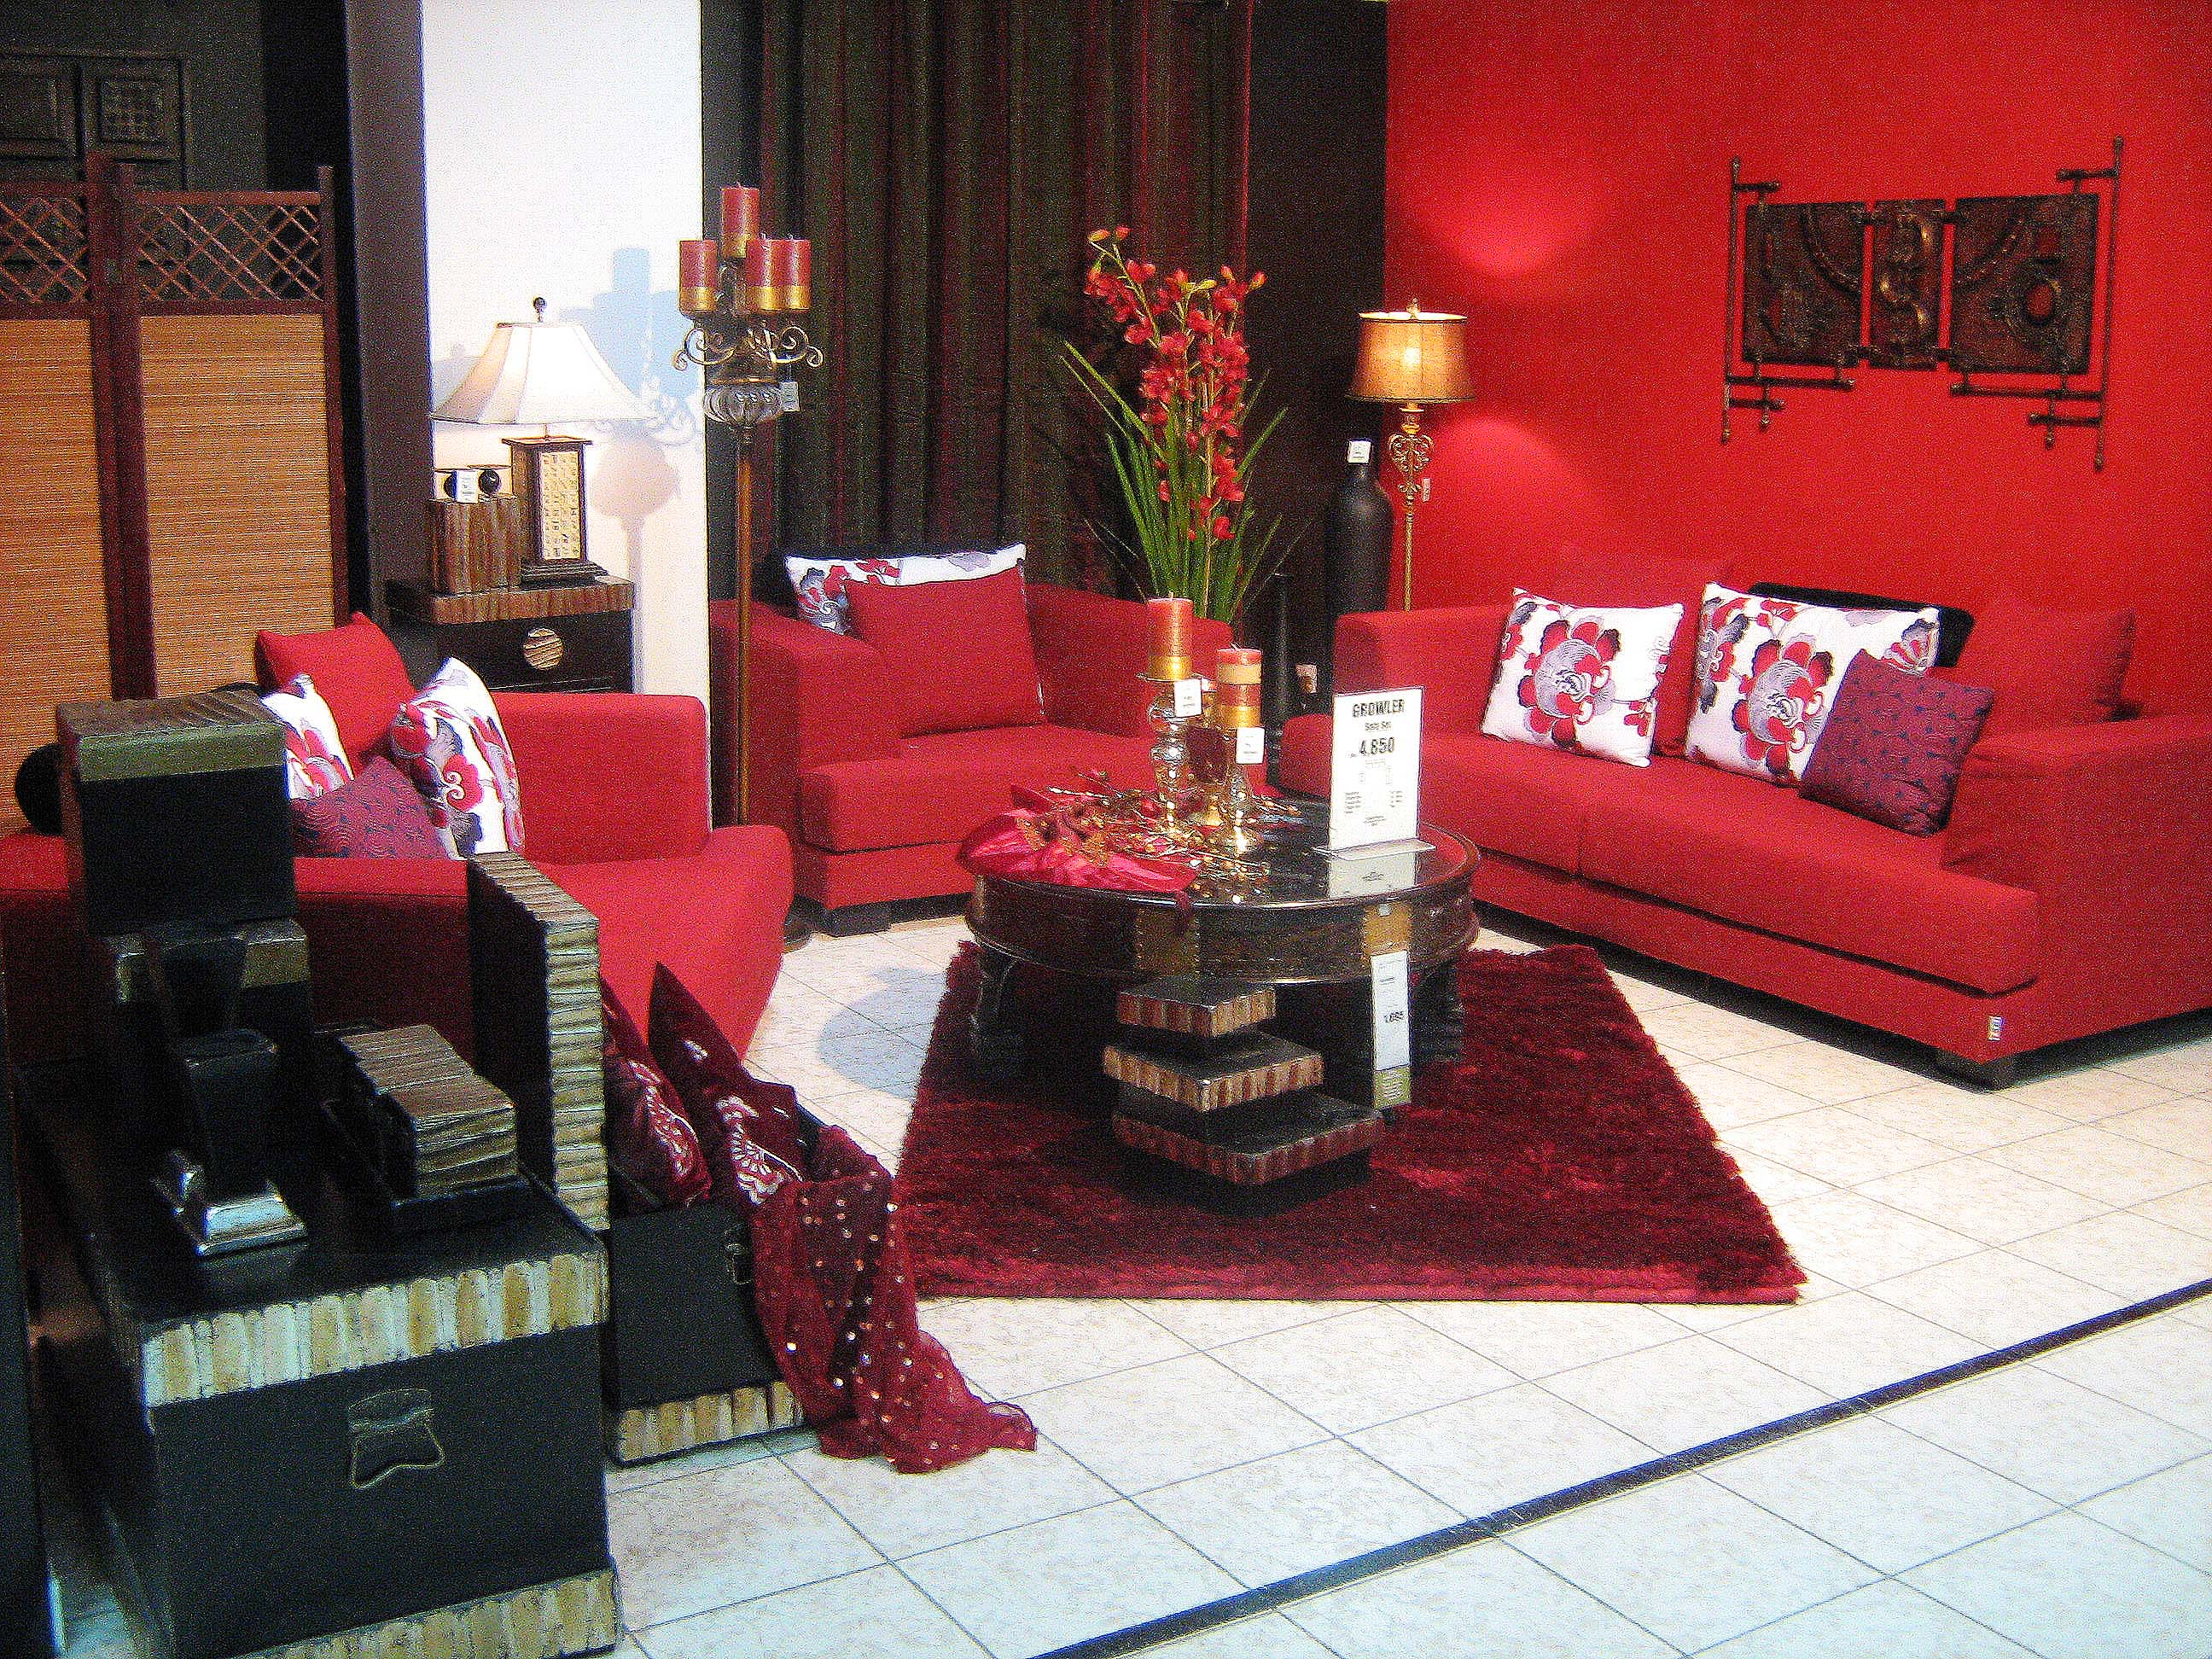 Home Furnishings Showroom Display By Felipe Hidalgo Iii At